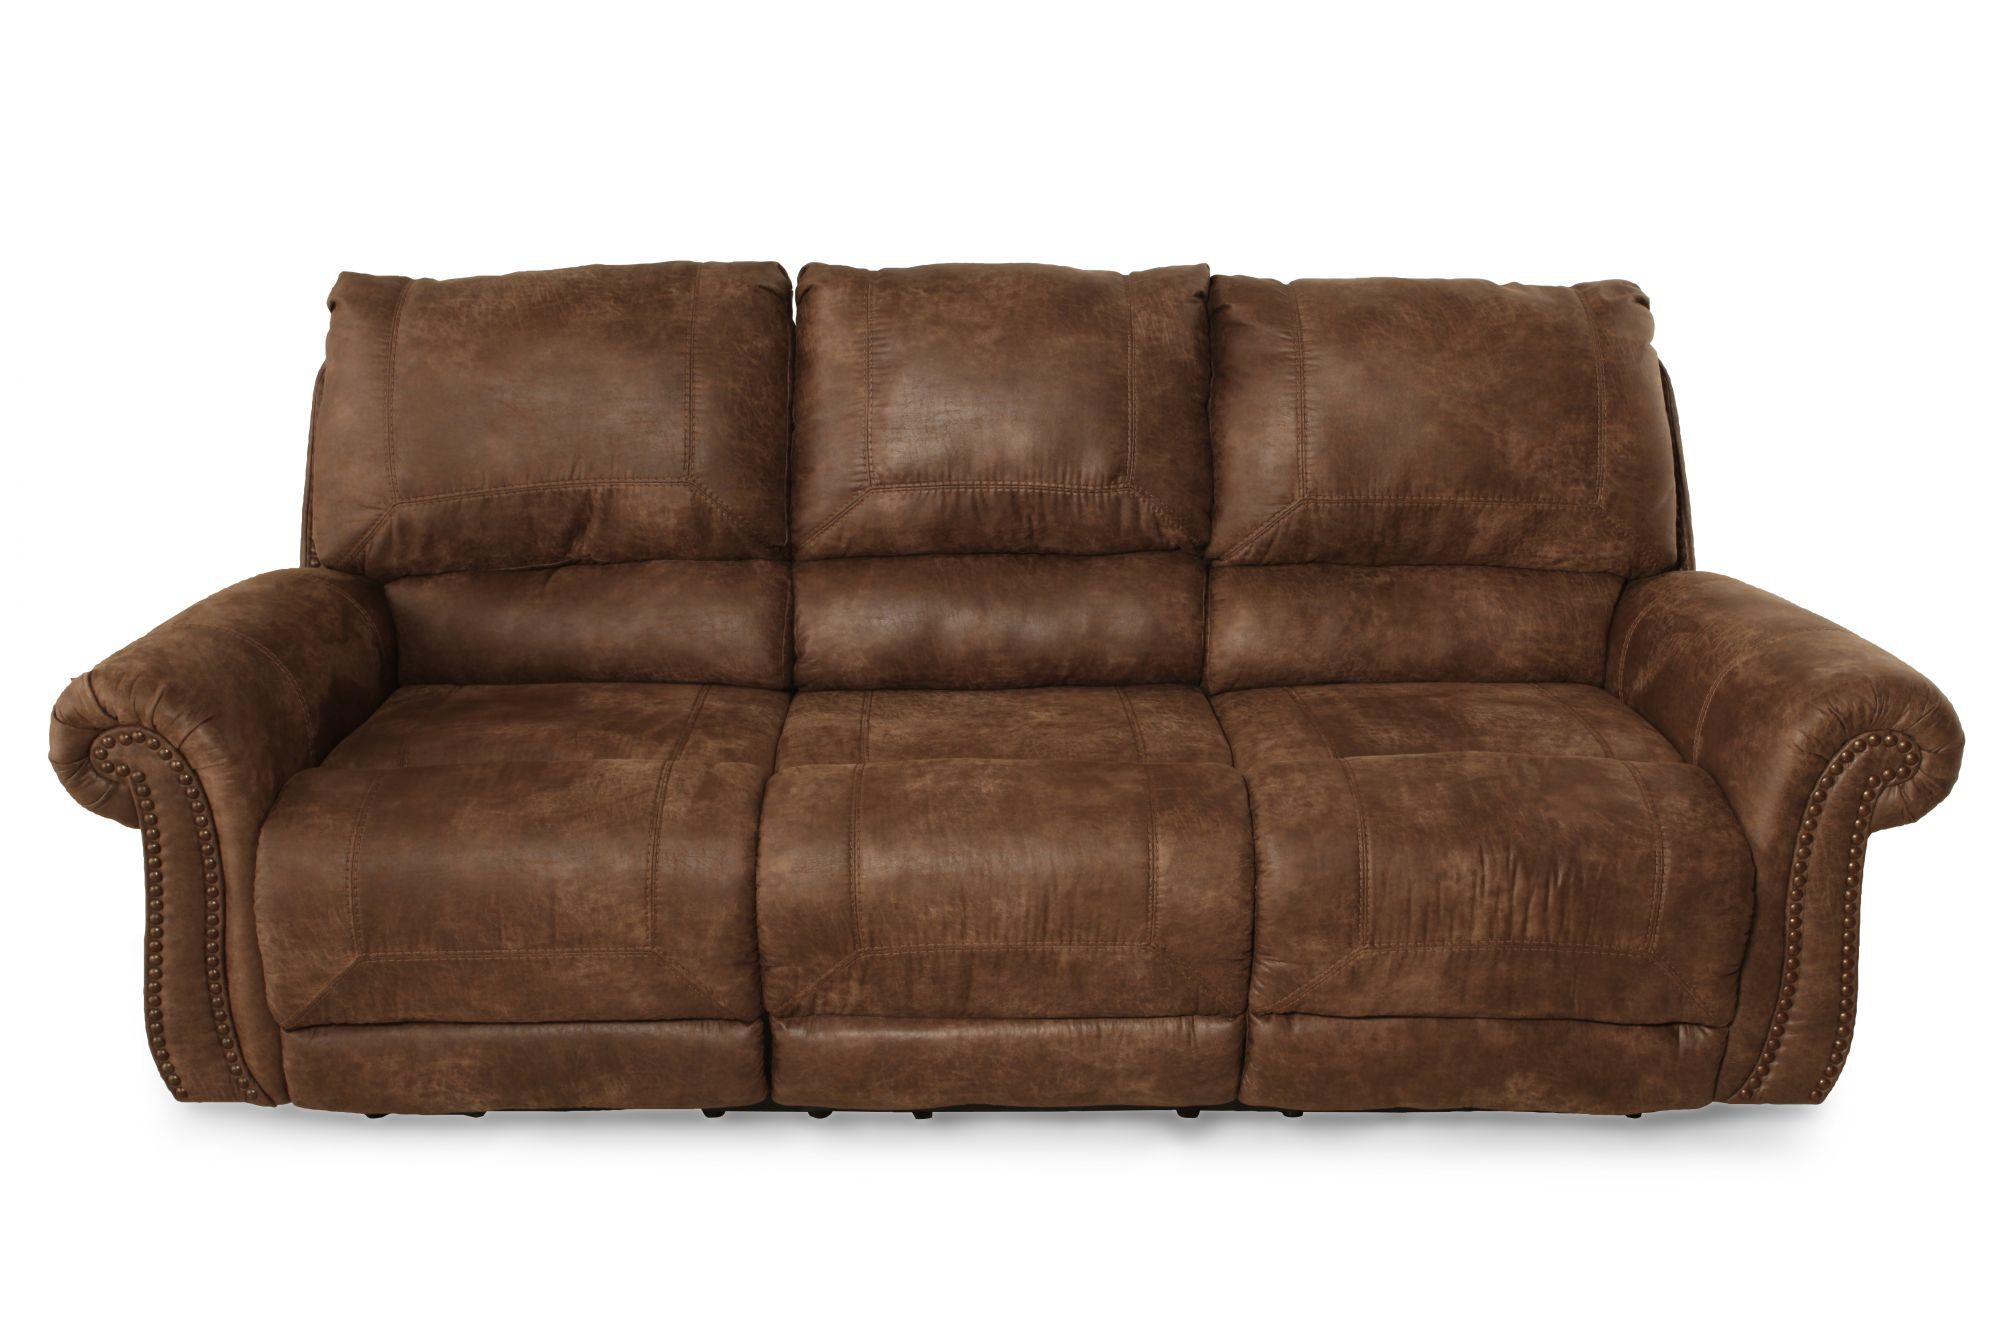 dark brown microfiber sofa best recliner leather nailhead accented 89 quot in